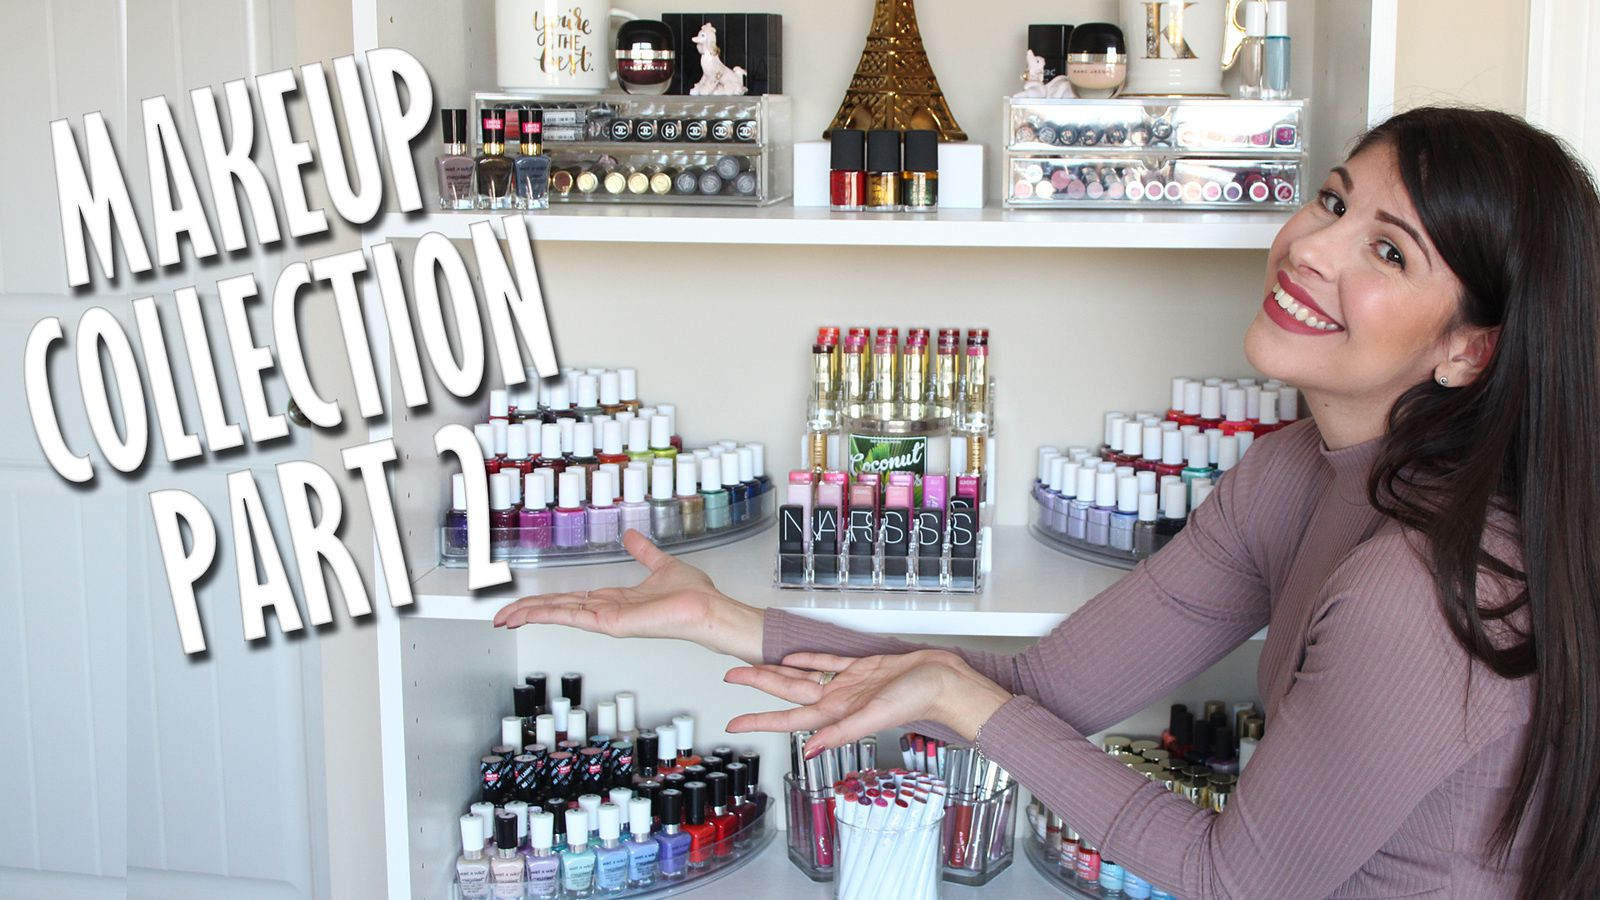 Makeup Collection + Storage | Part 2